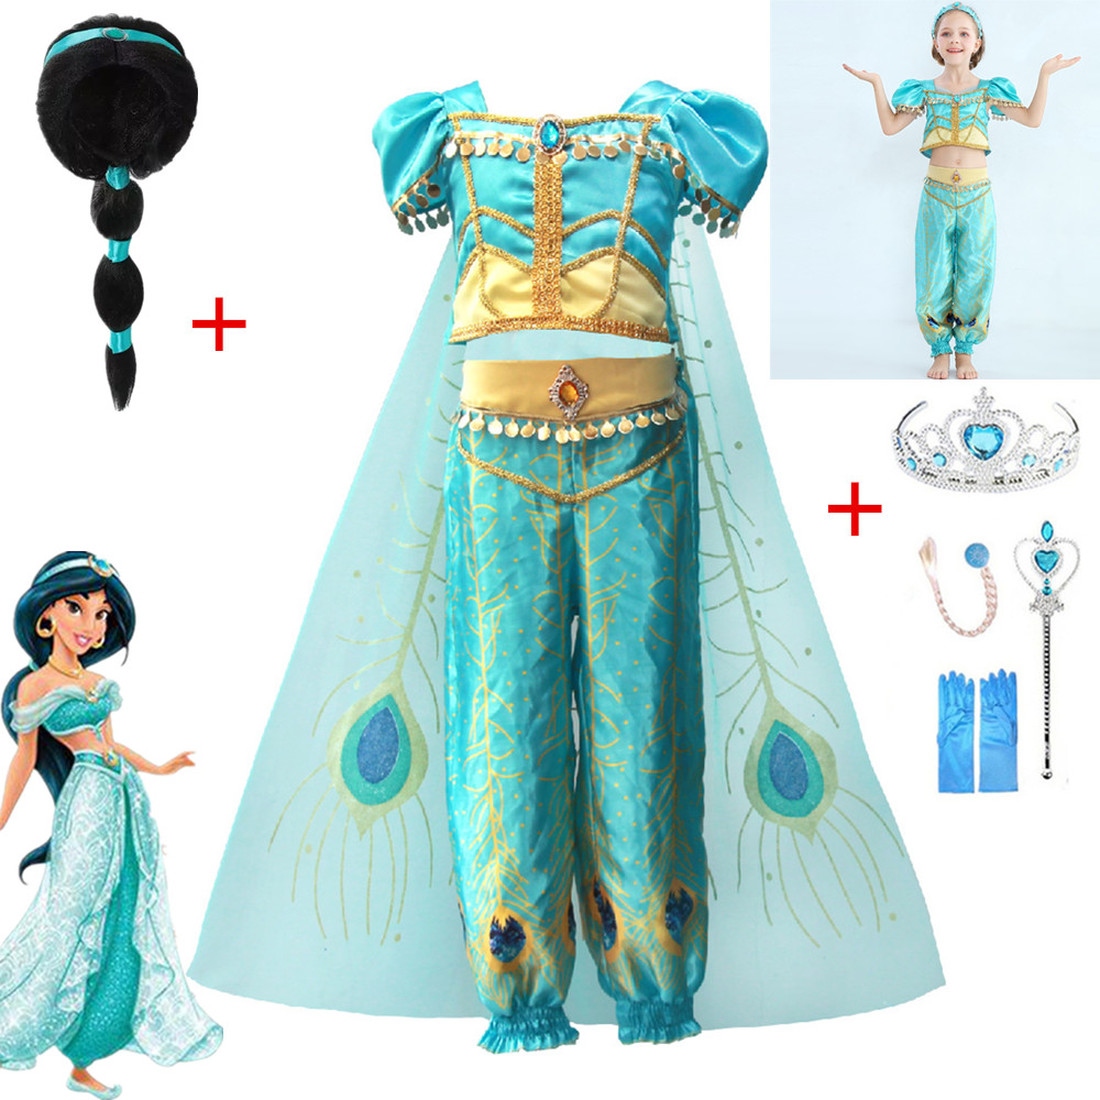 2019 Christmas Children's Dress Aladdin's Lamp Cosplay Halloween Costume+wig Jasmine Princess Girl Dress Role Clothes Sets+gift